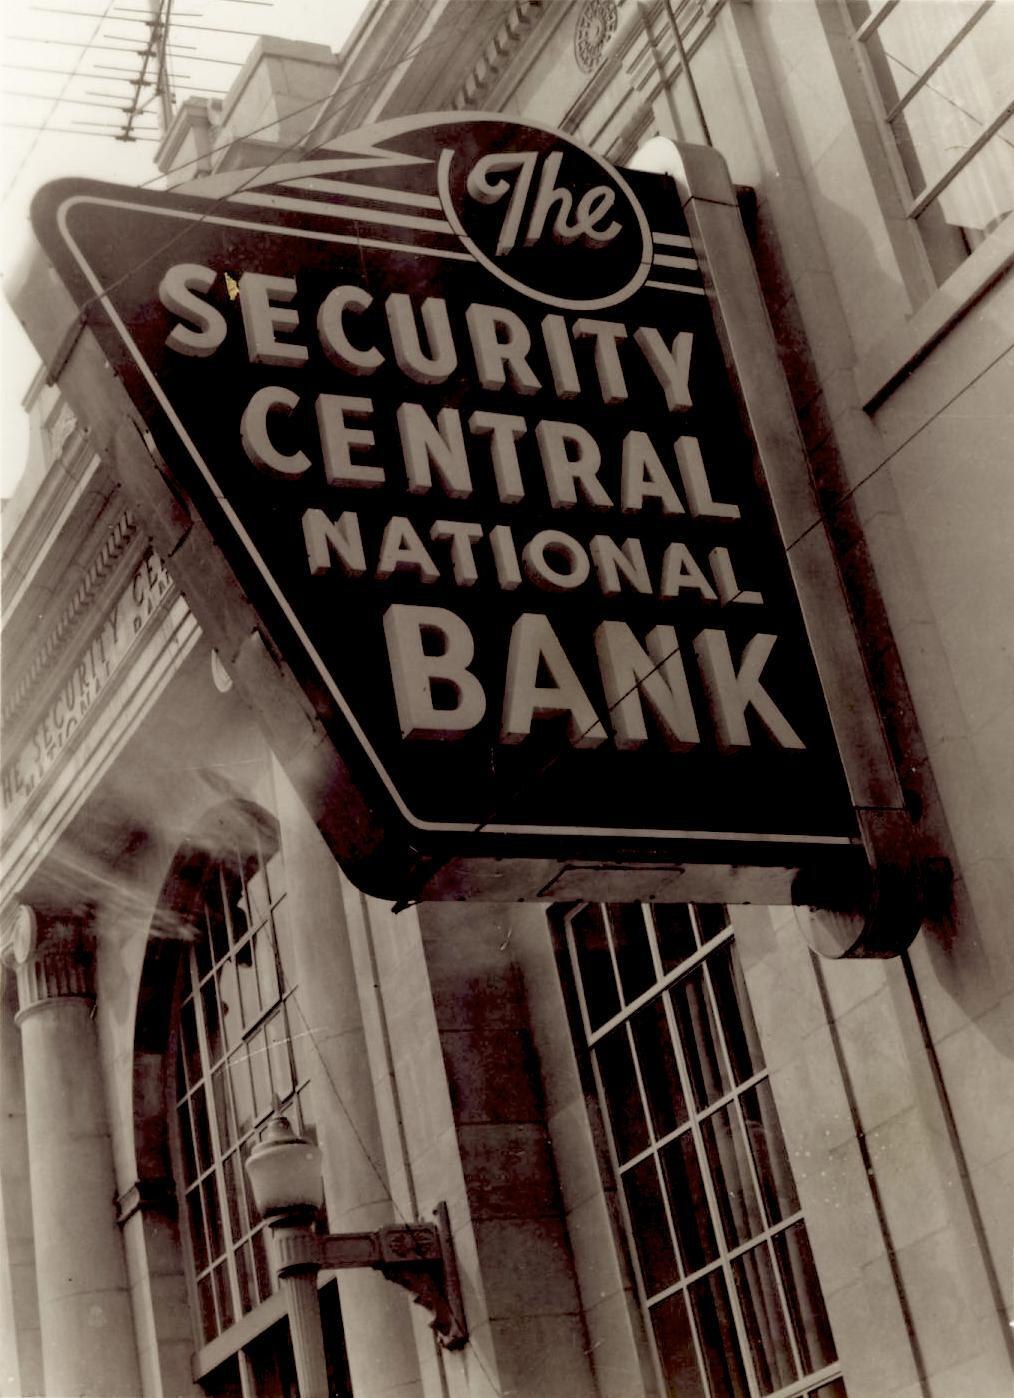 The Security Central National Bank sign and front entrance, Gallia Street, Portsmouth, Ohio, c. 1960.